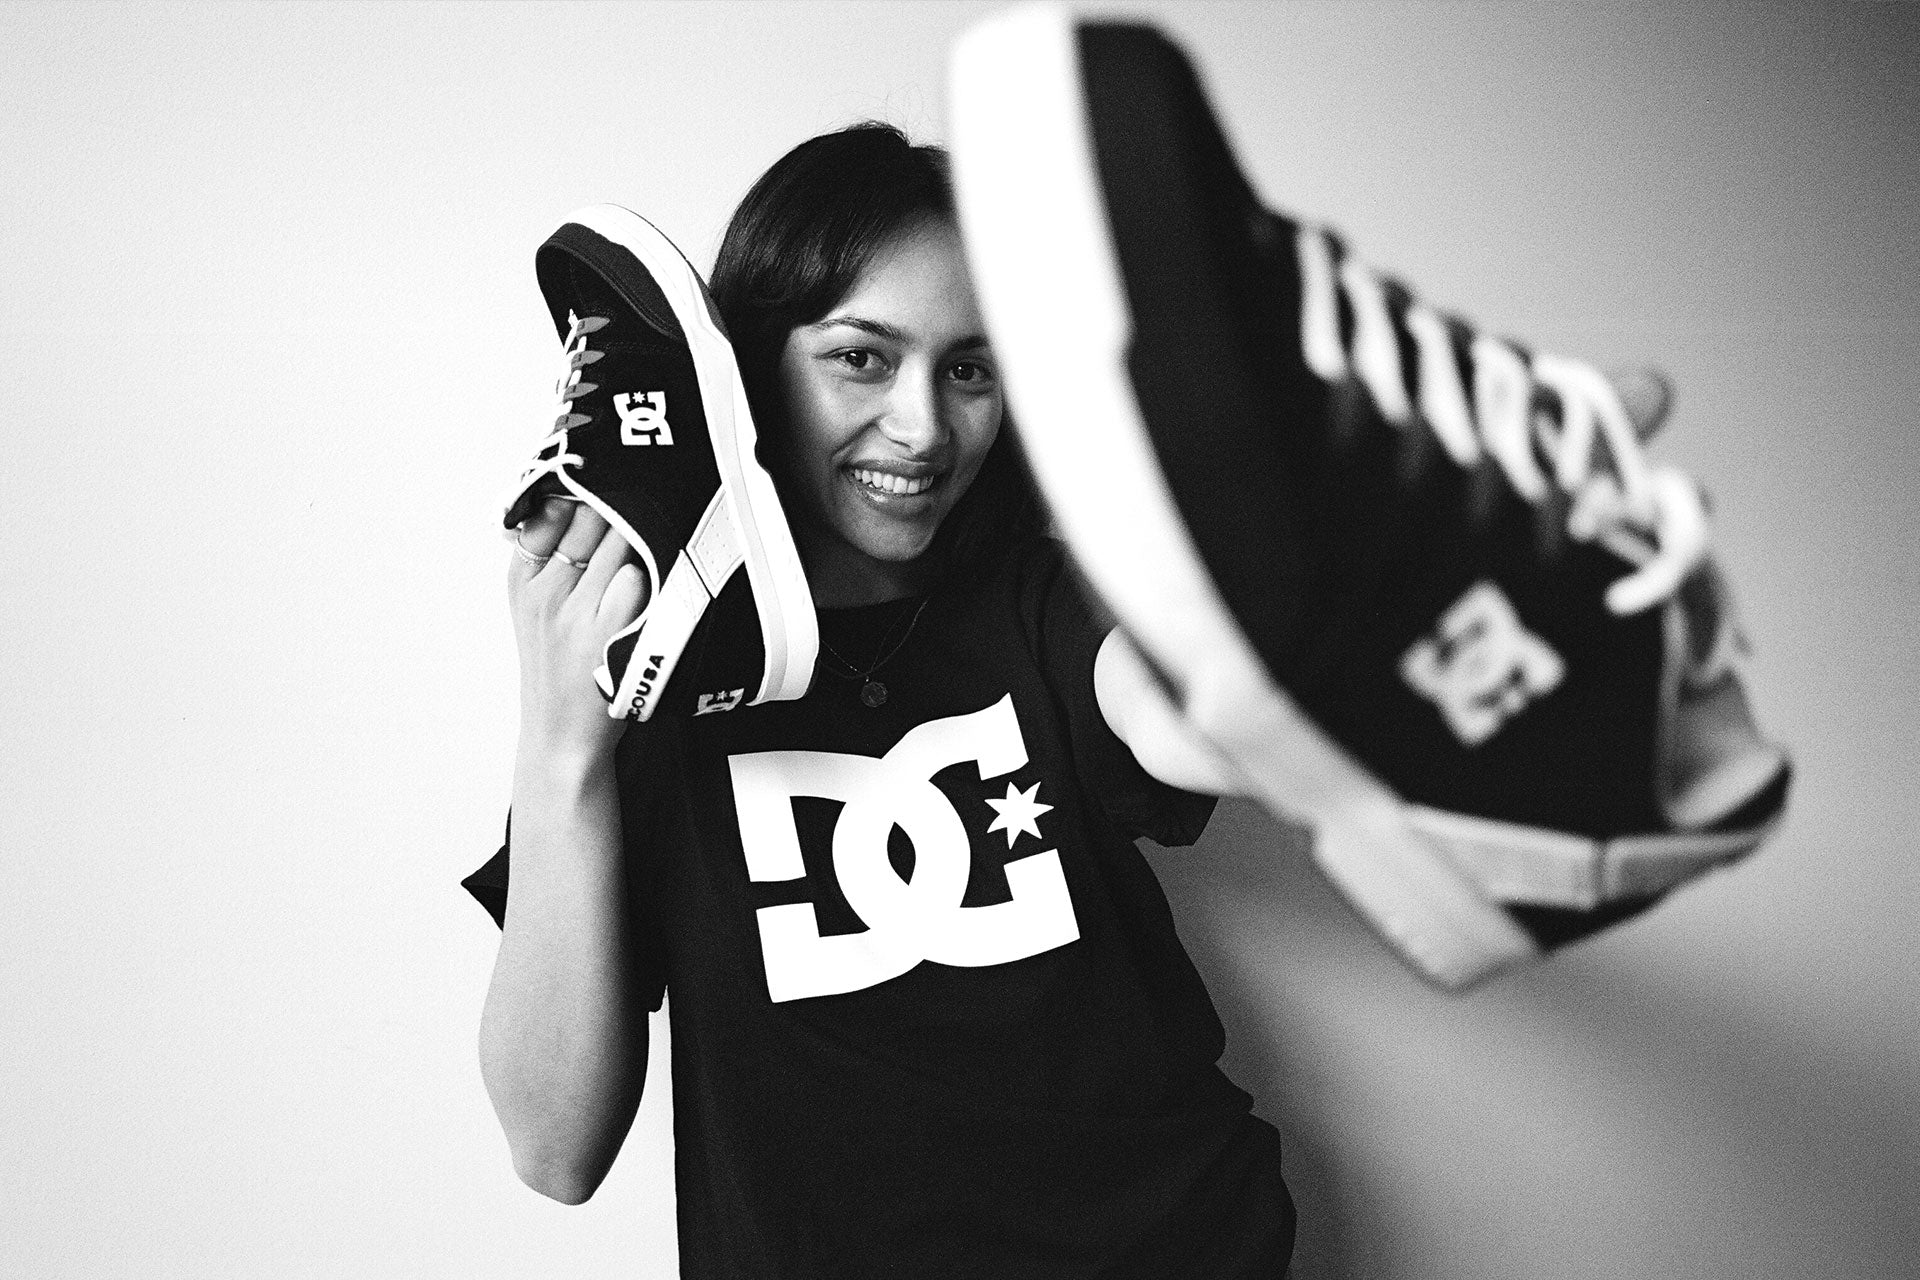 DC Shoes 2017 Heritage Lookbook Skateboarding Lifestyle Collection